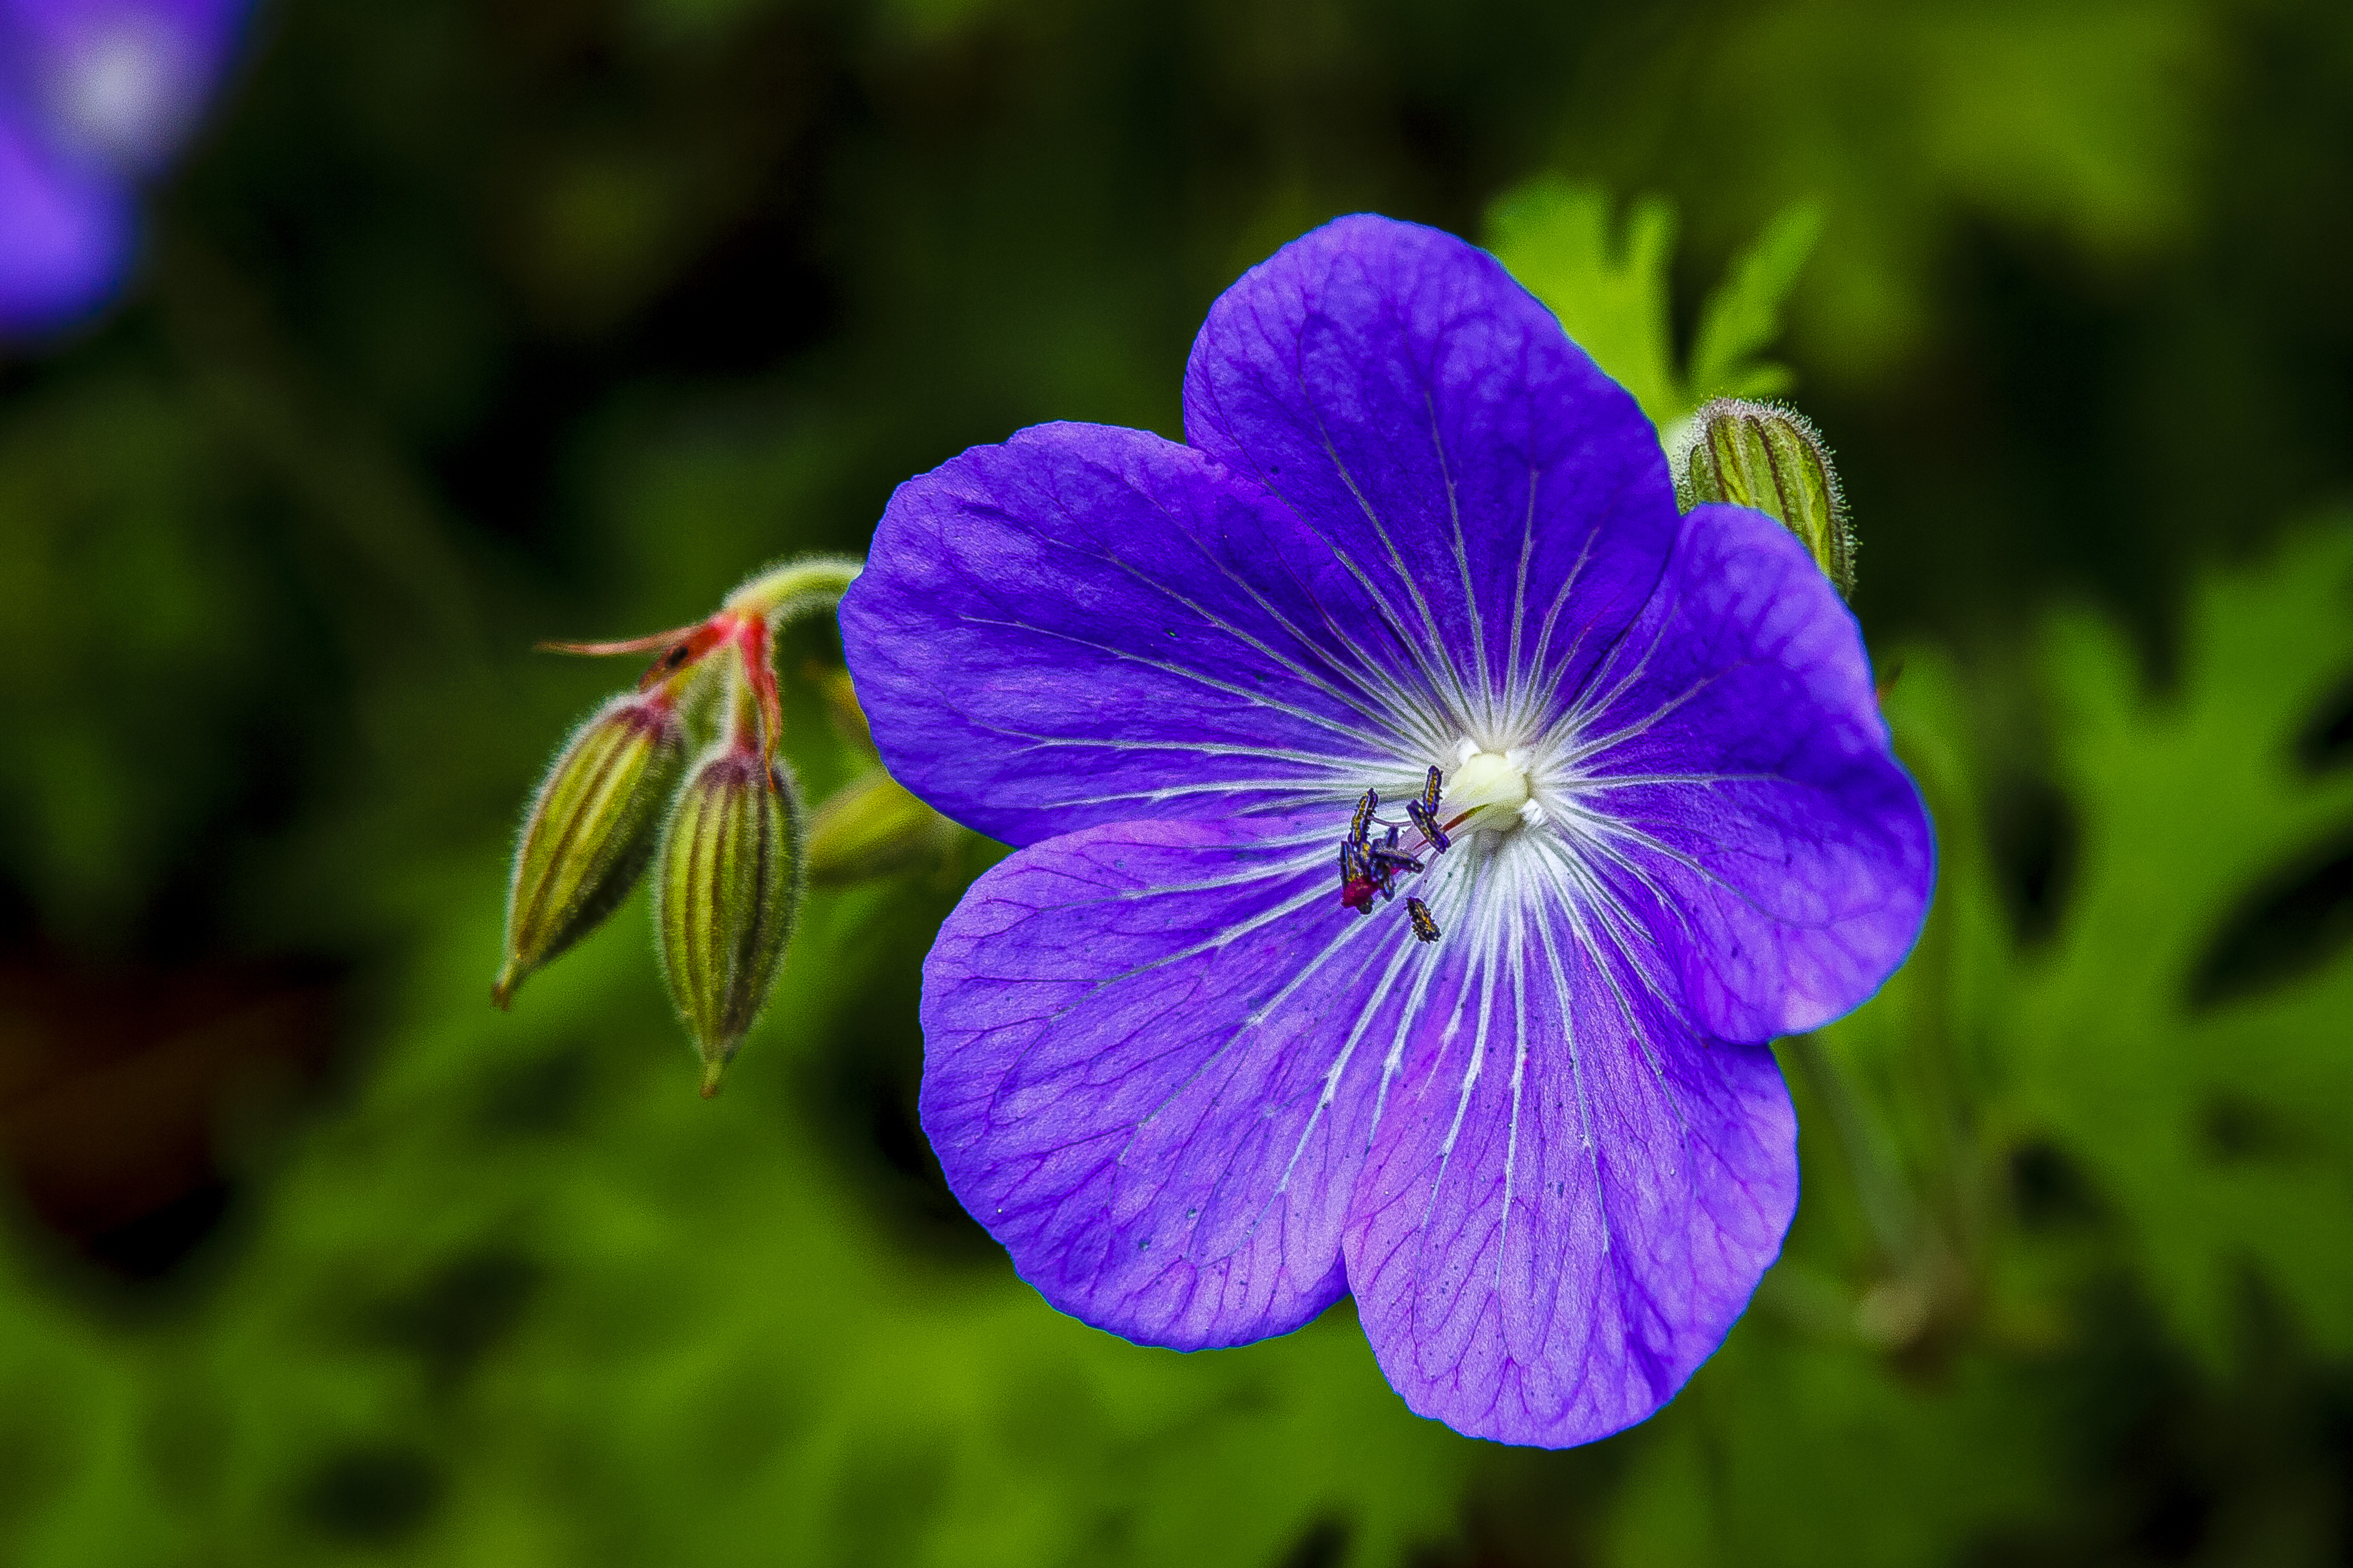 violet flower image - free stock photo